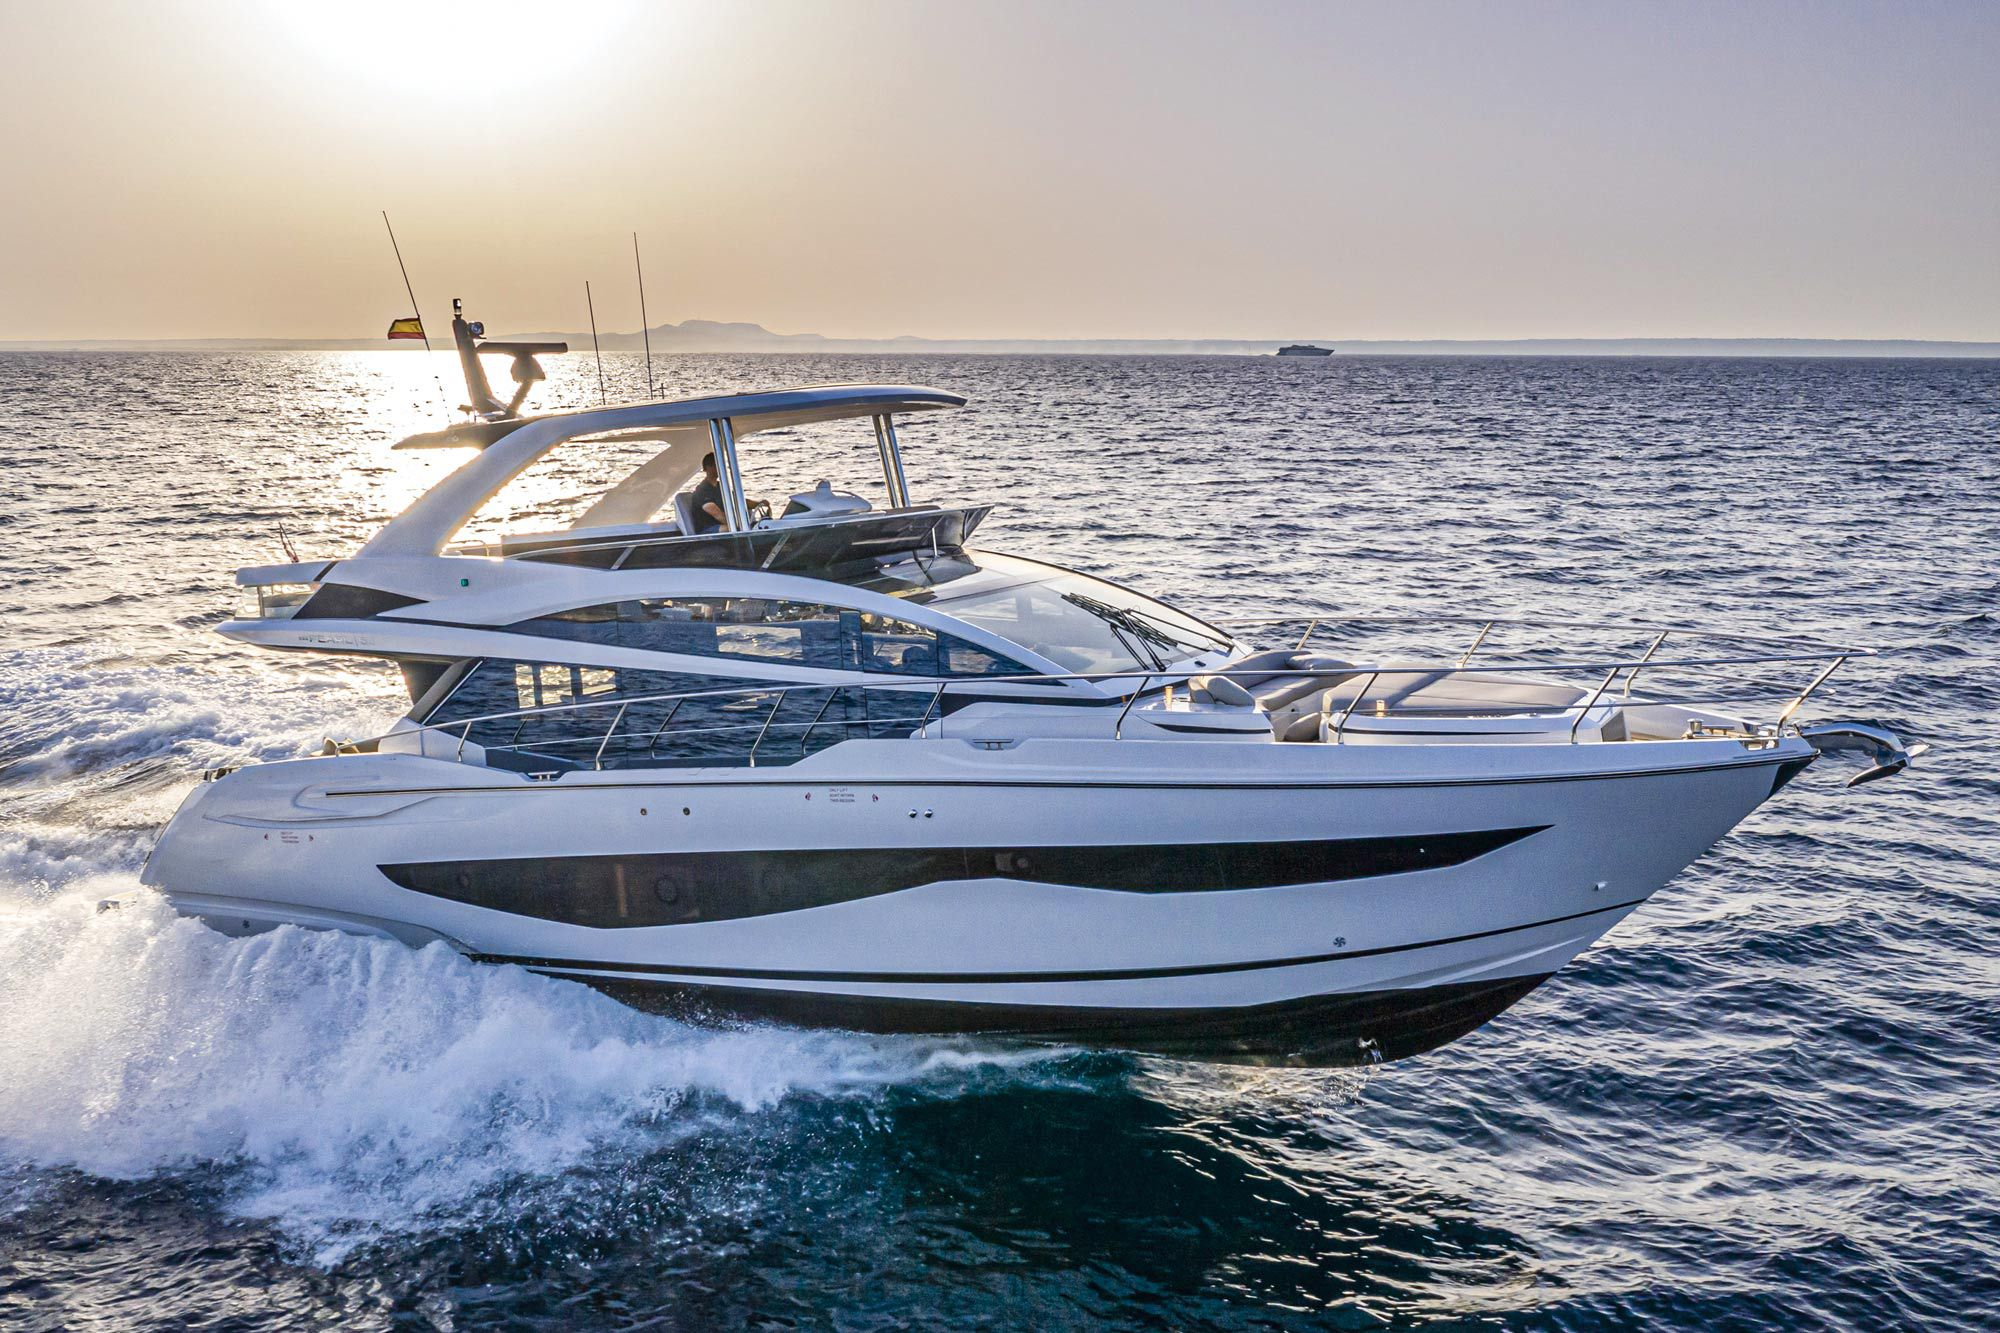 Powered with twin 900 hp Volvo Penta IPS1200s, the Pearl 62 made 32 knots at wide-open throttle.